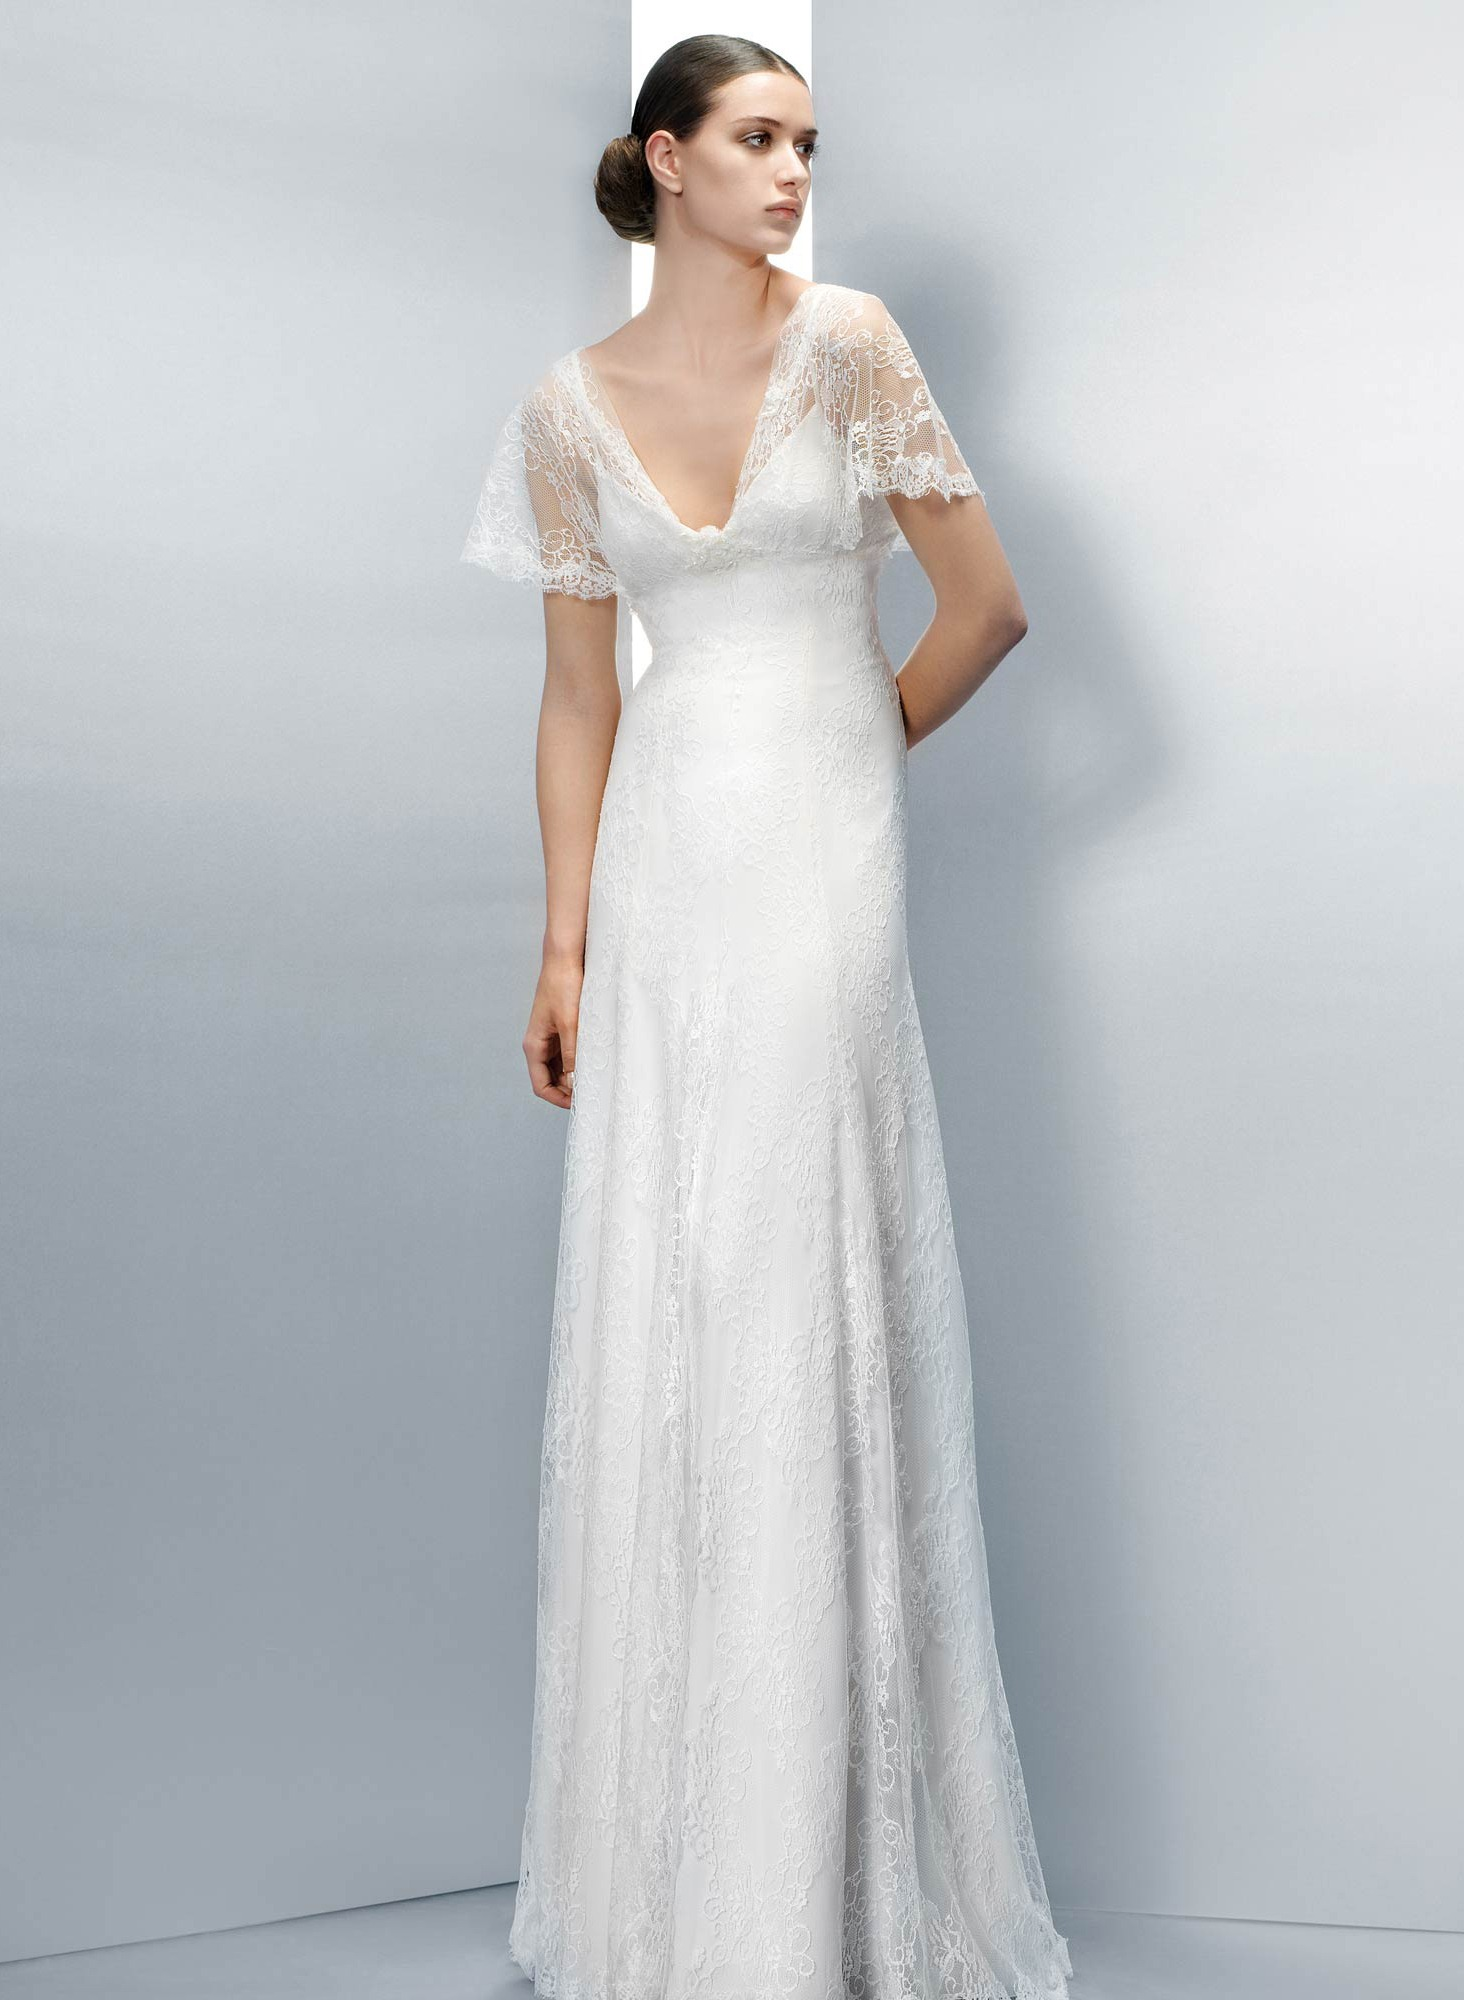 A Collection Of Vintage Wedding Dresses Cherry Marry